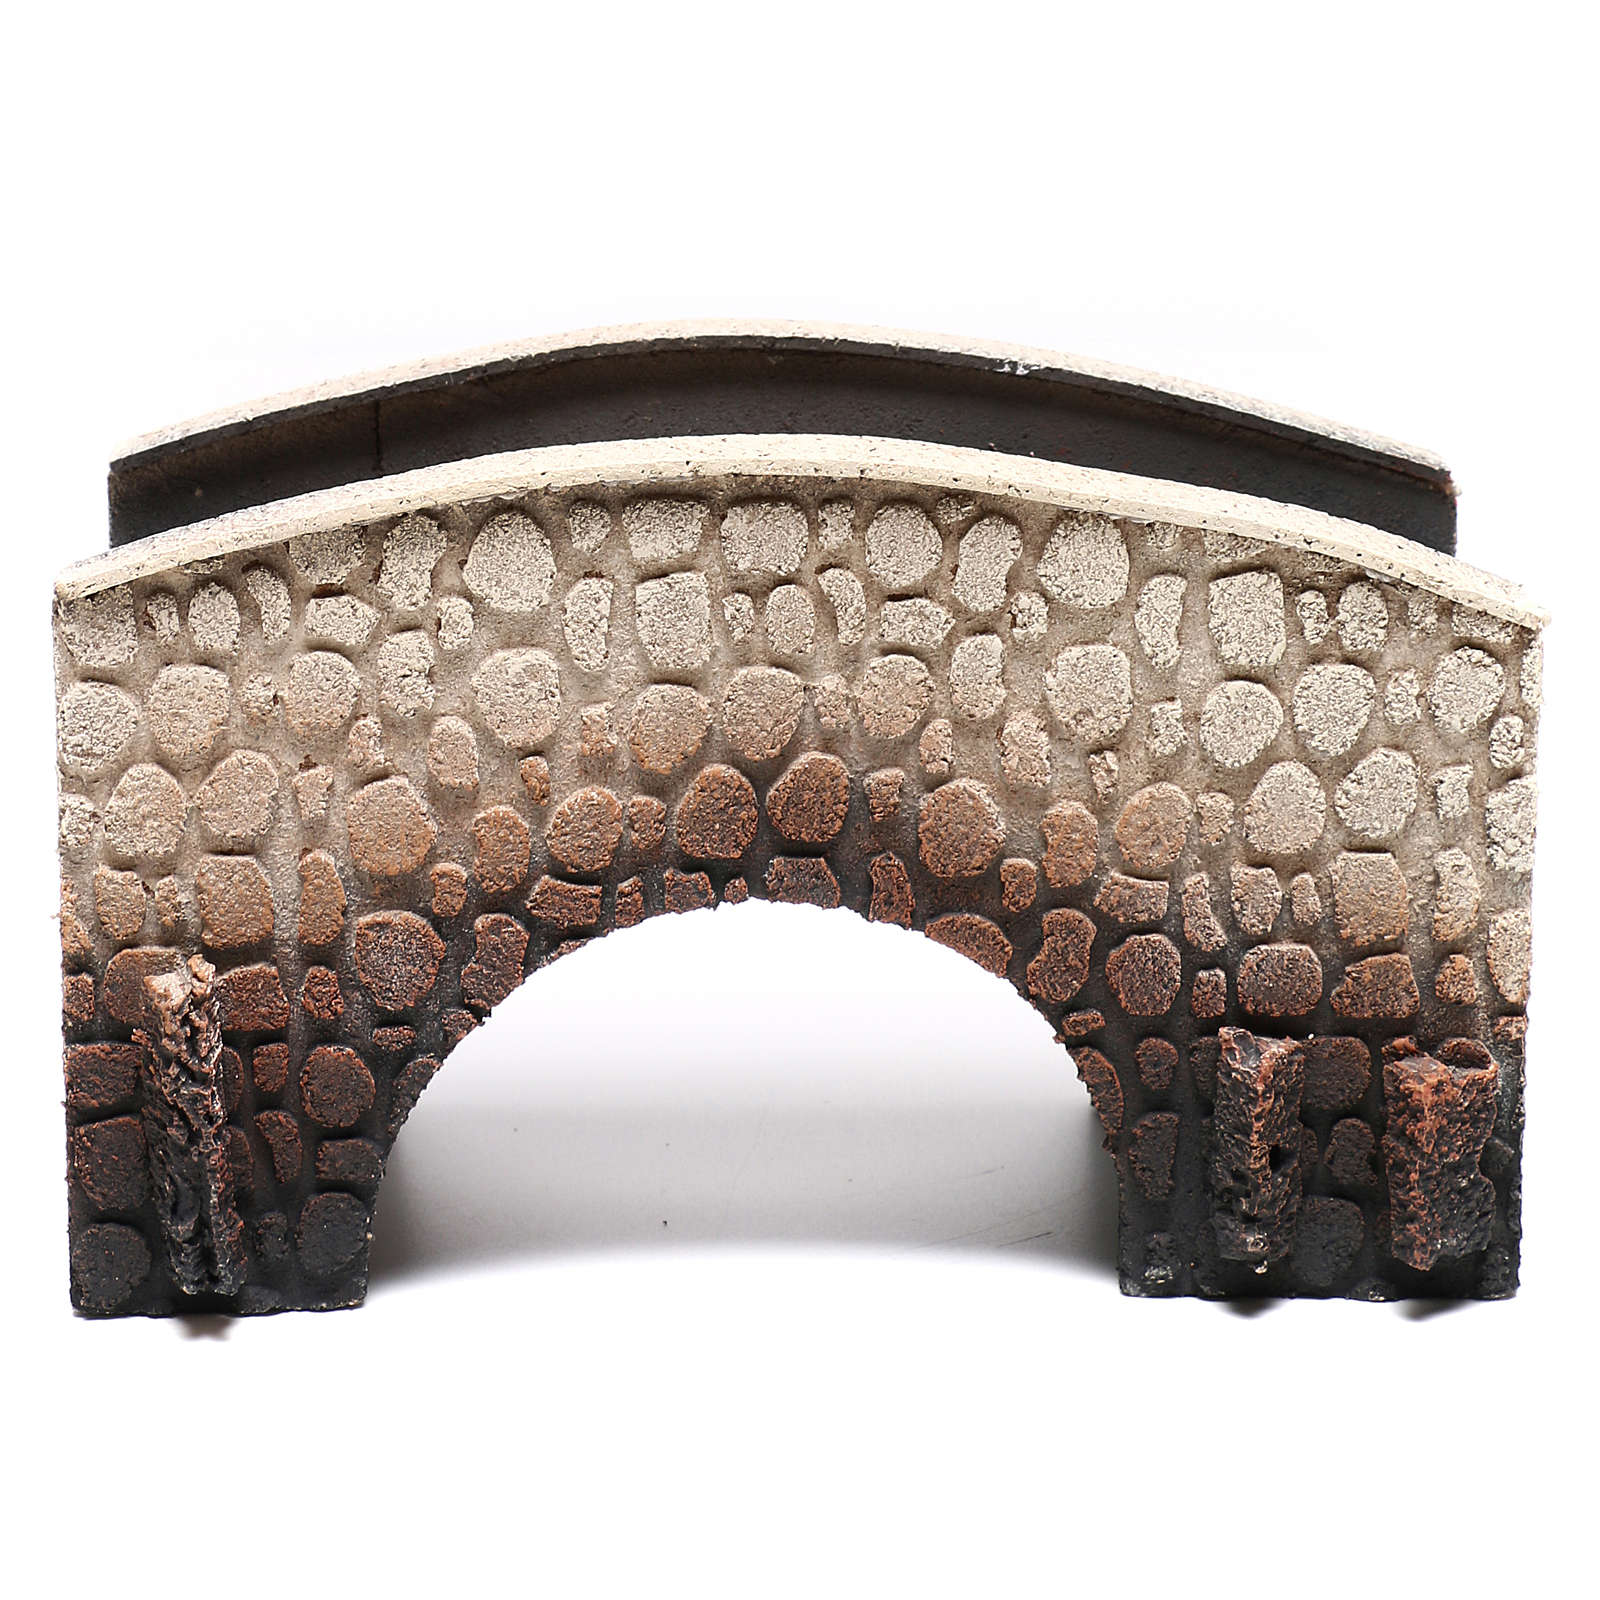 Bridge in cork, arched, for nativities 16x25x11cm 4